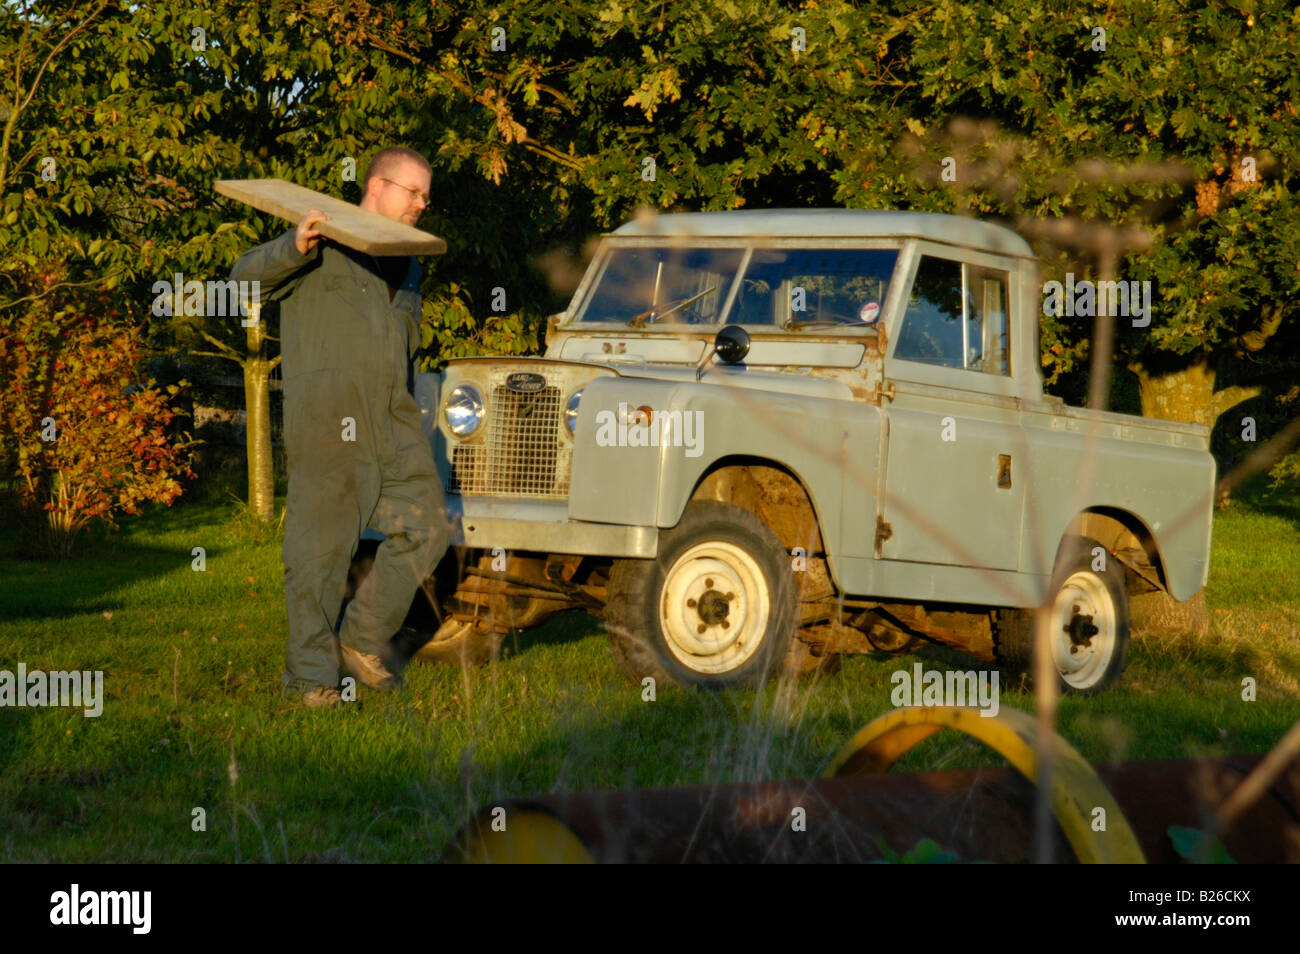 Workman loading a timber beam into a historic 1963 Landrover Series 2a truckcab in original and full working condition. - Stock Image